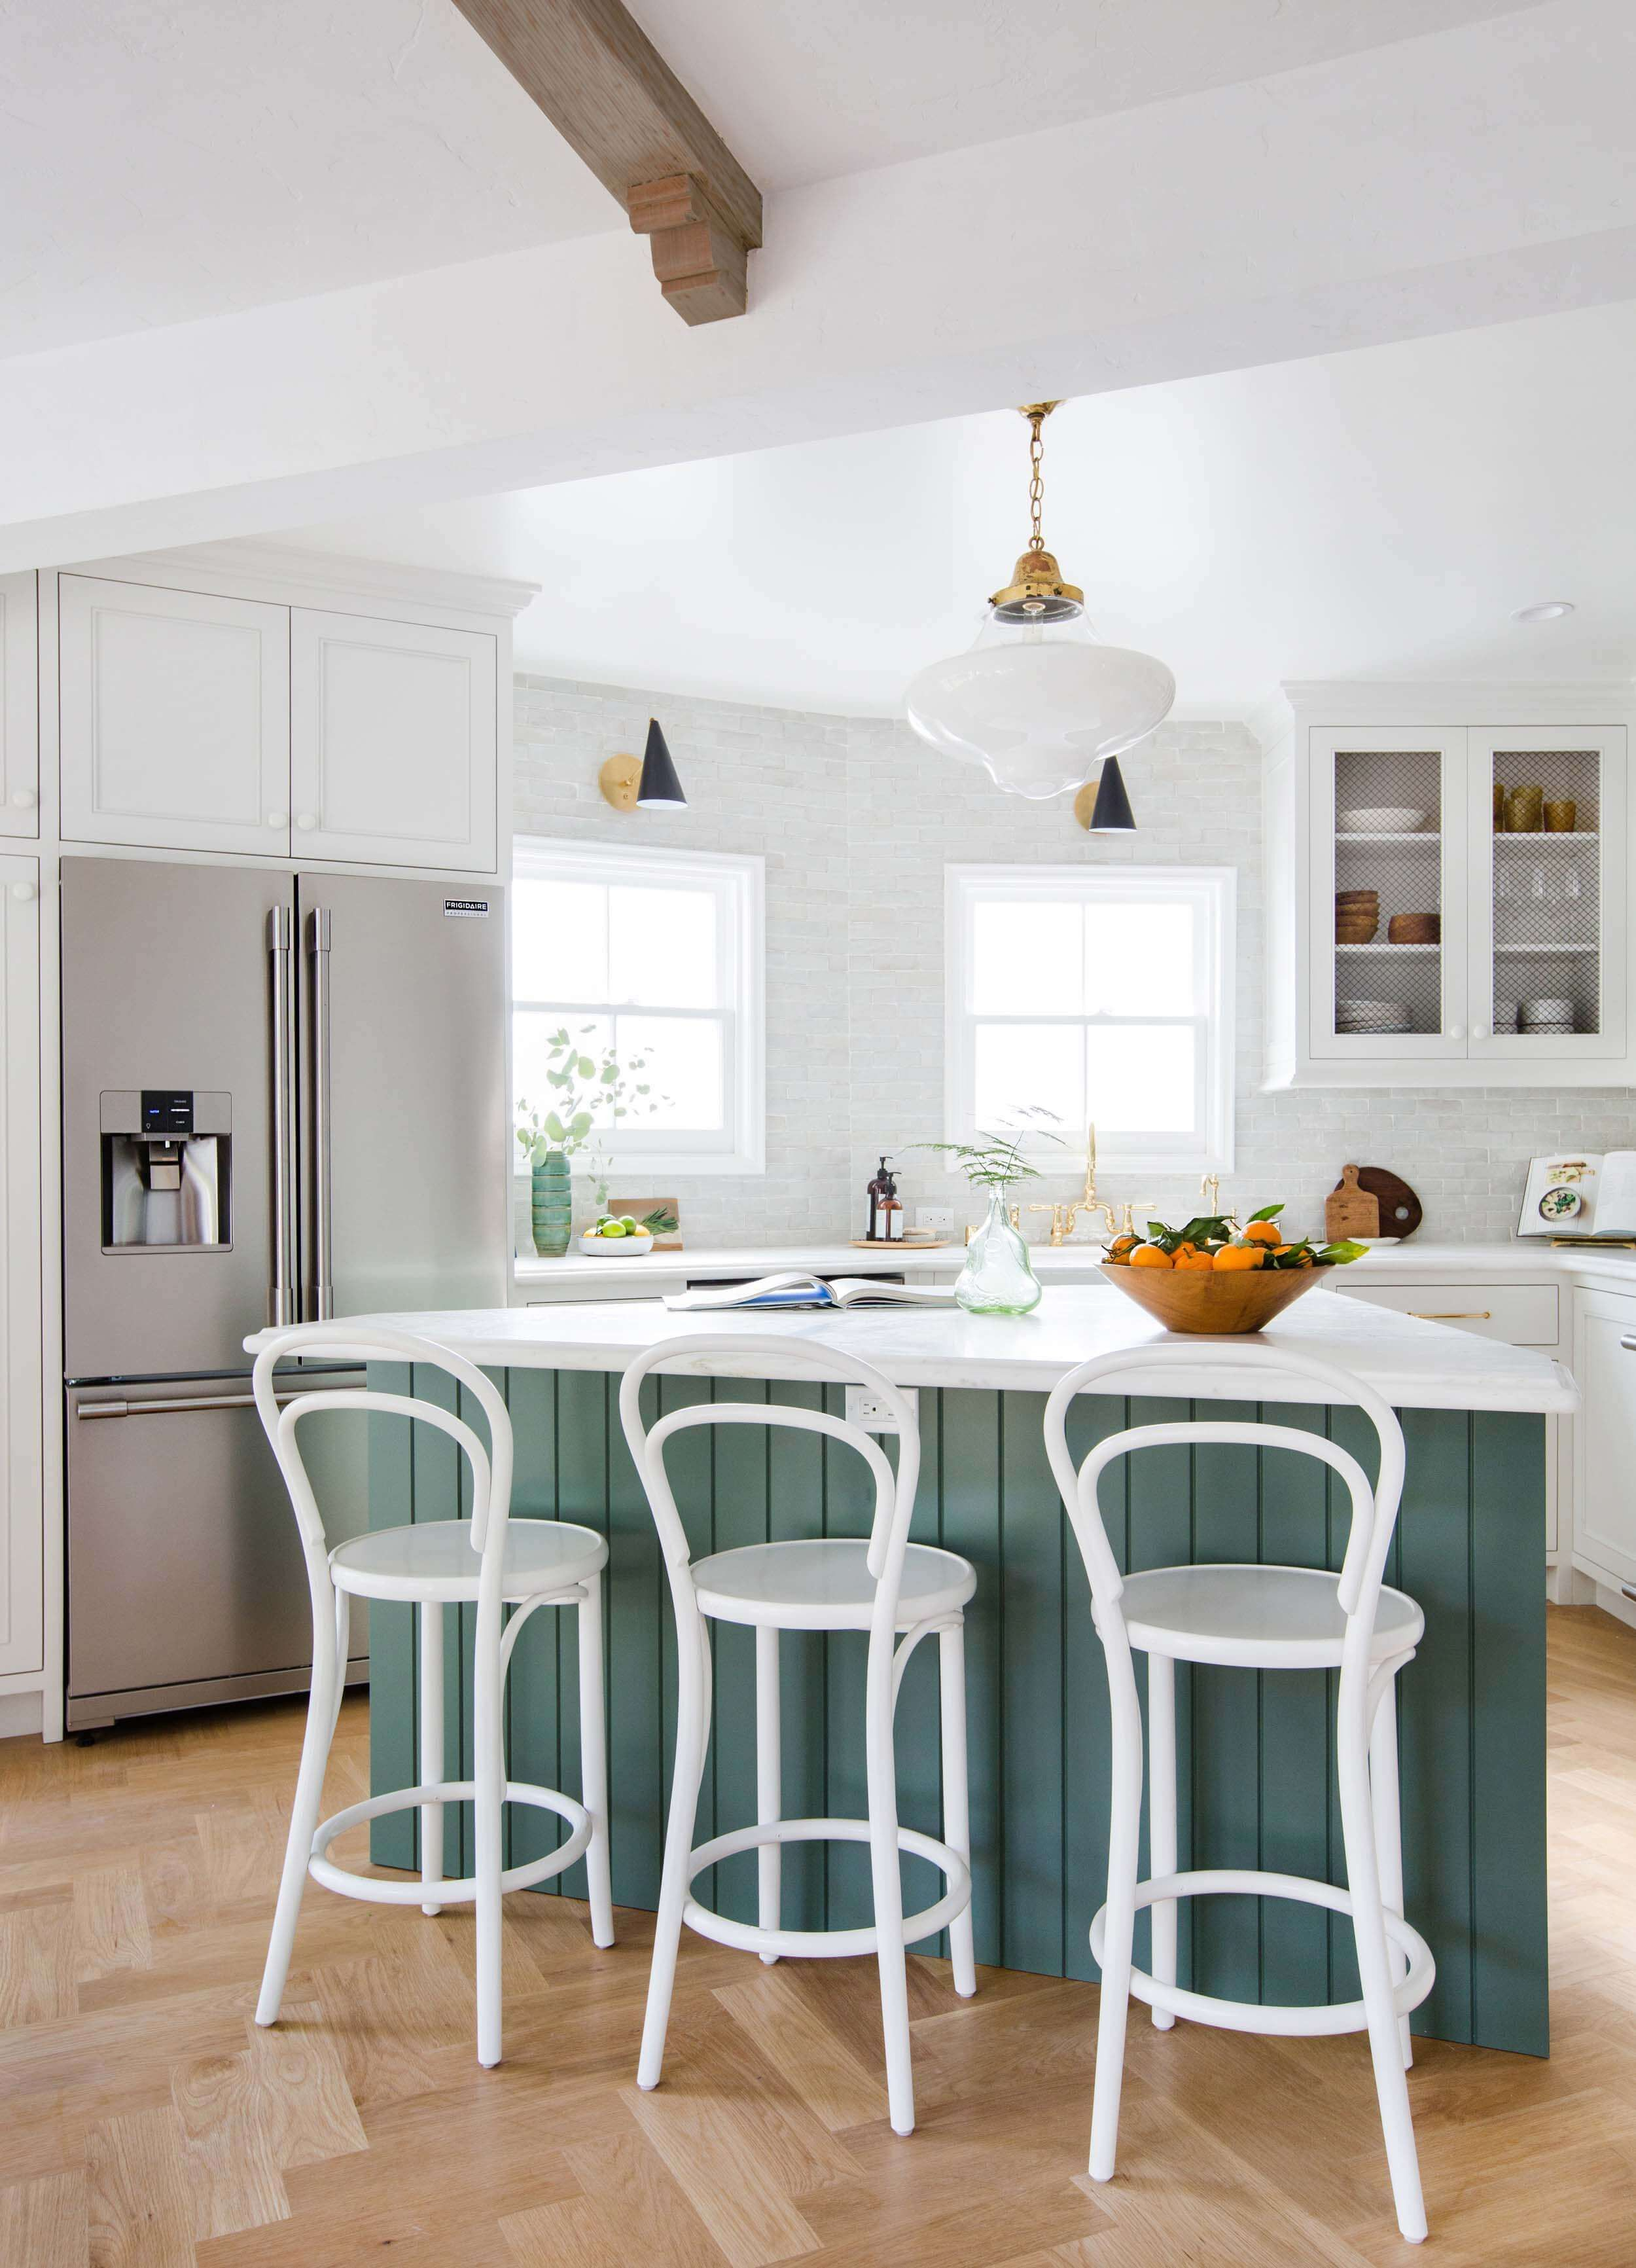 Painted Vs Stained Cabinets Best Options For Your Kitchen Farmhouse Kitchen Design Country Kitchen Designs English Country Kitchens